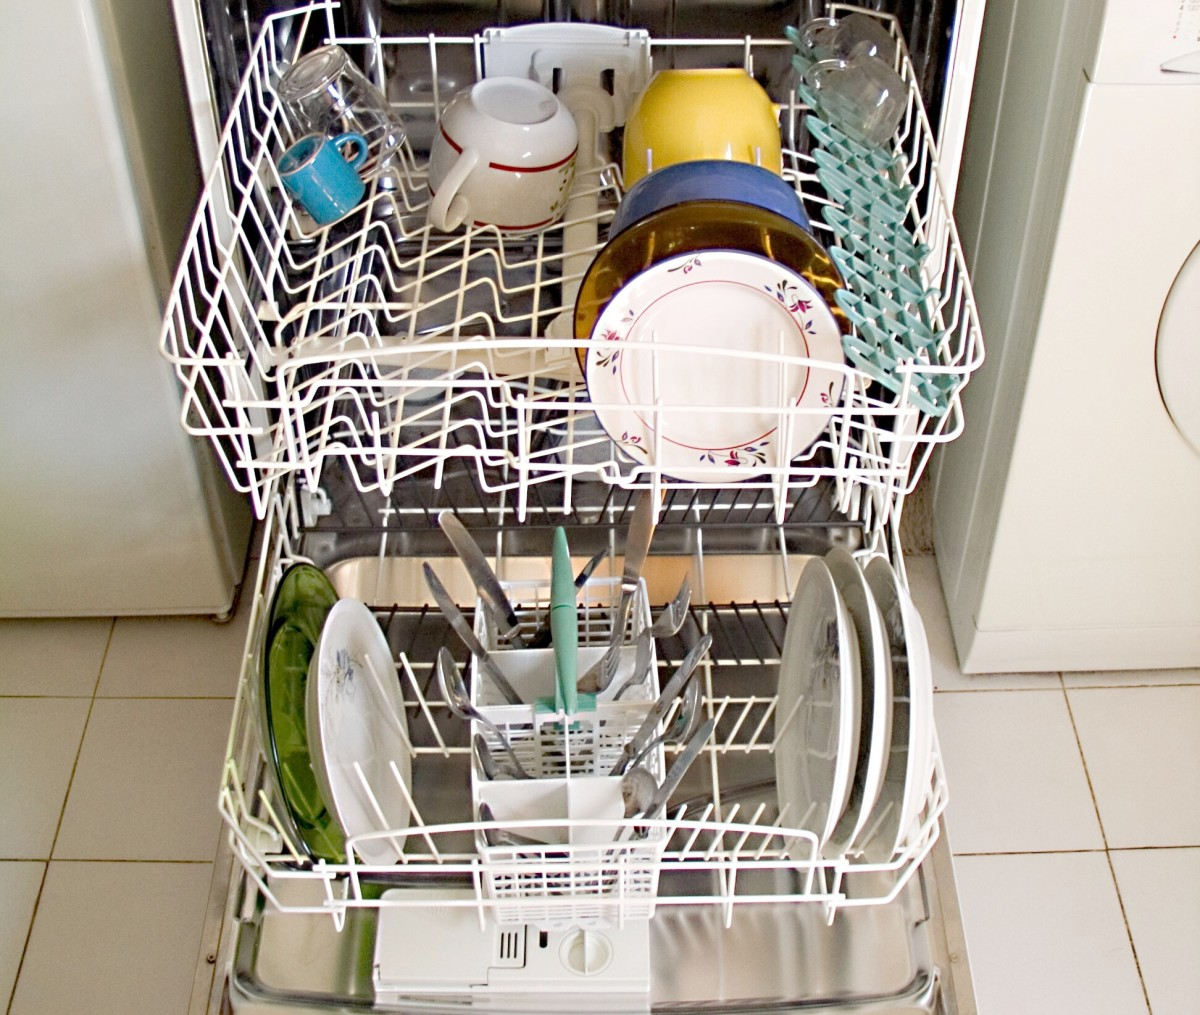 Very hot water in dishwashers and washing machines can cause chloroform to vaporize from chlorinated water.